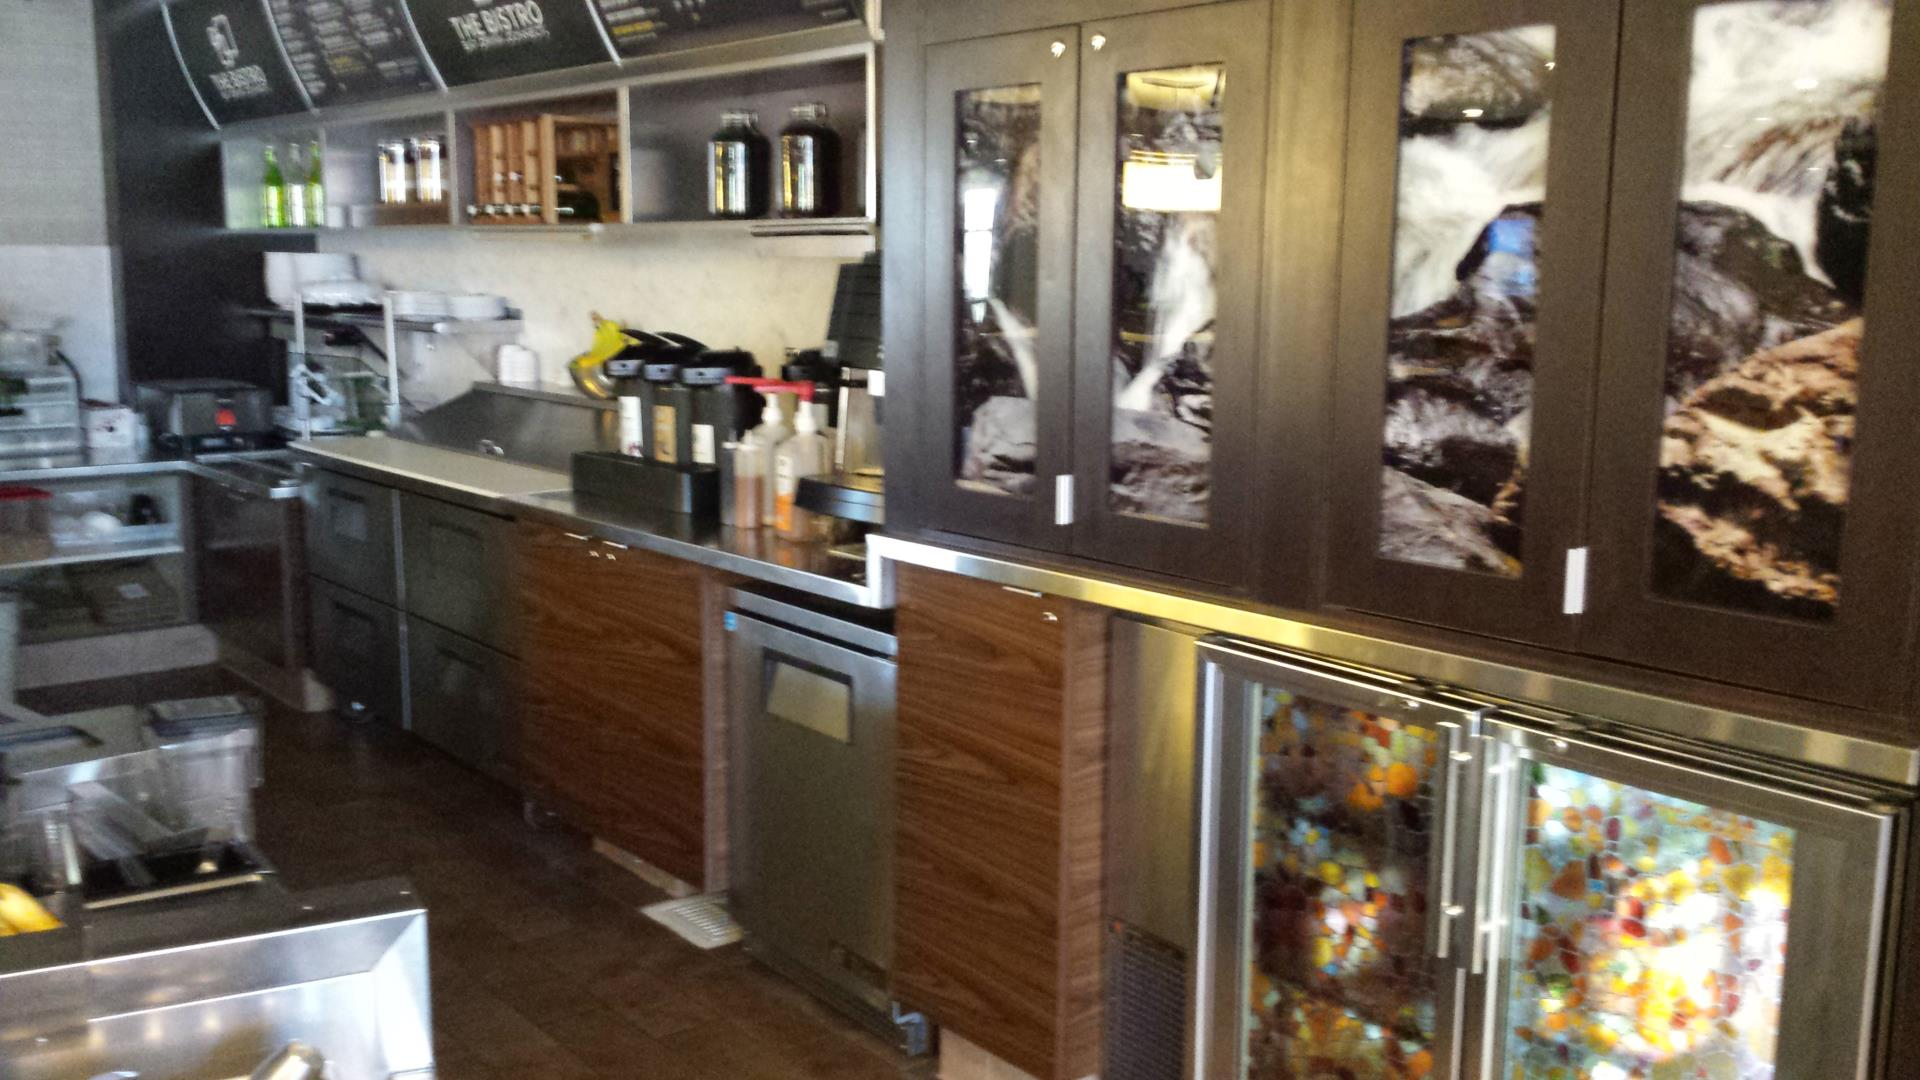 Bistro within Missoula County that had been inspected.